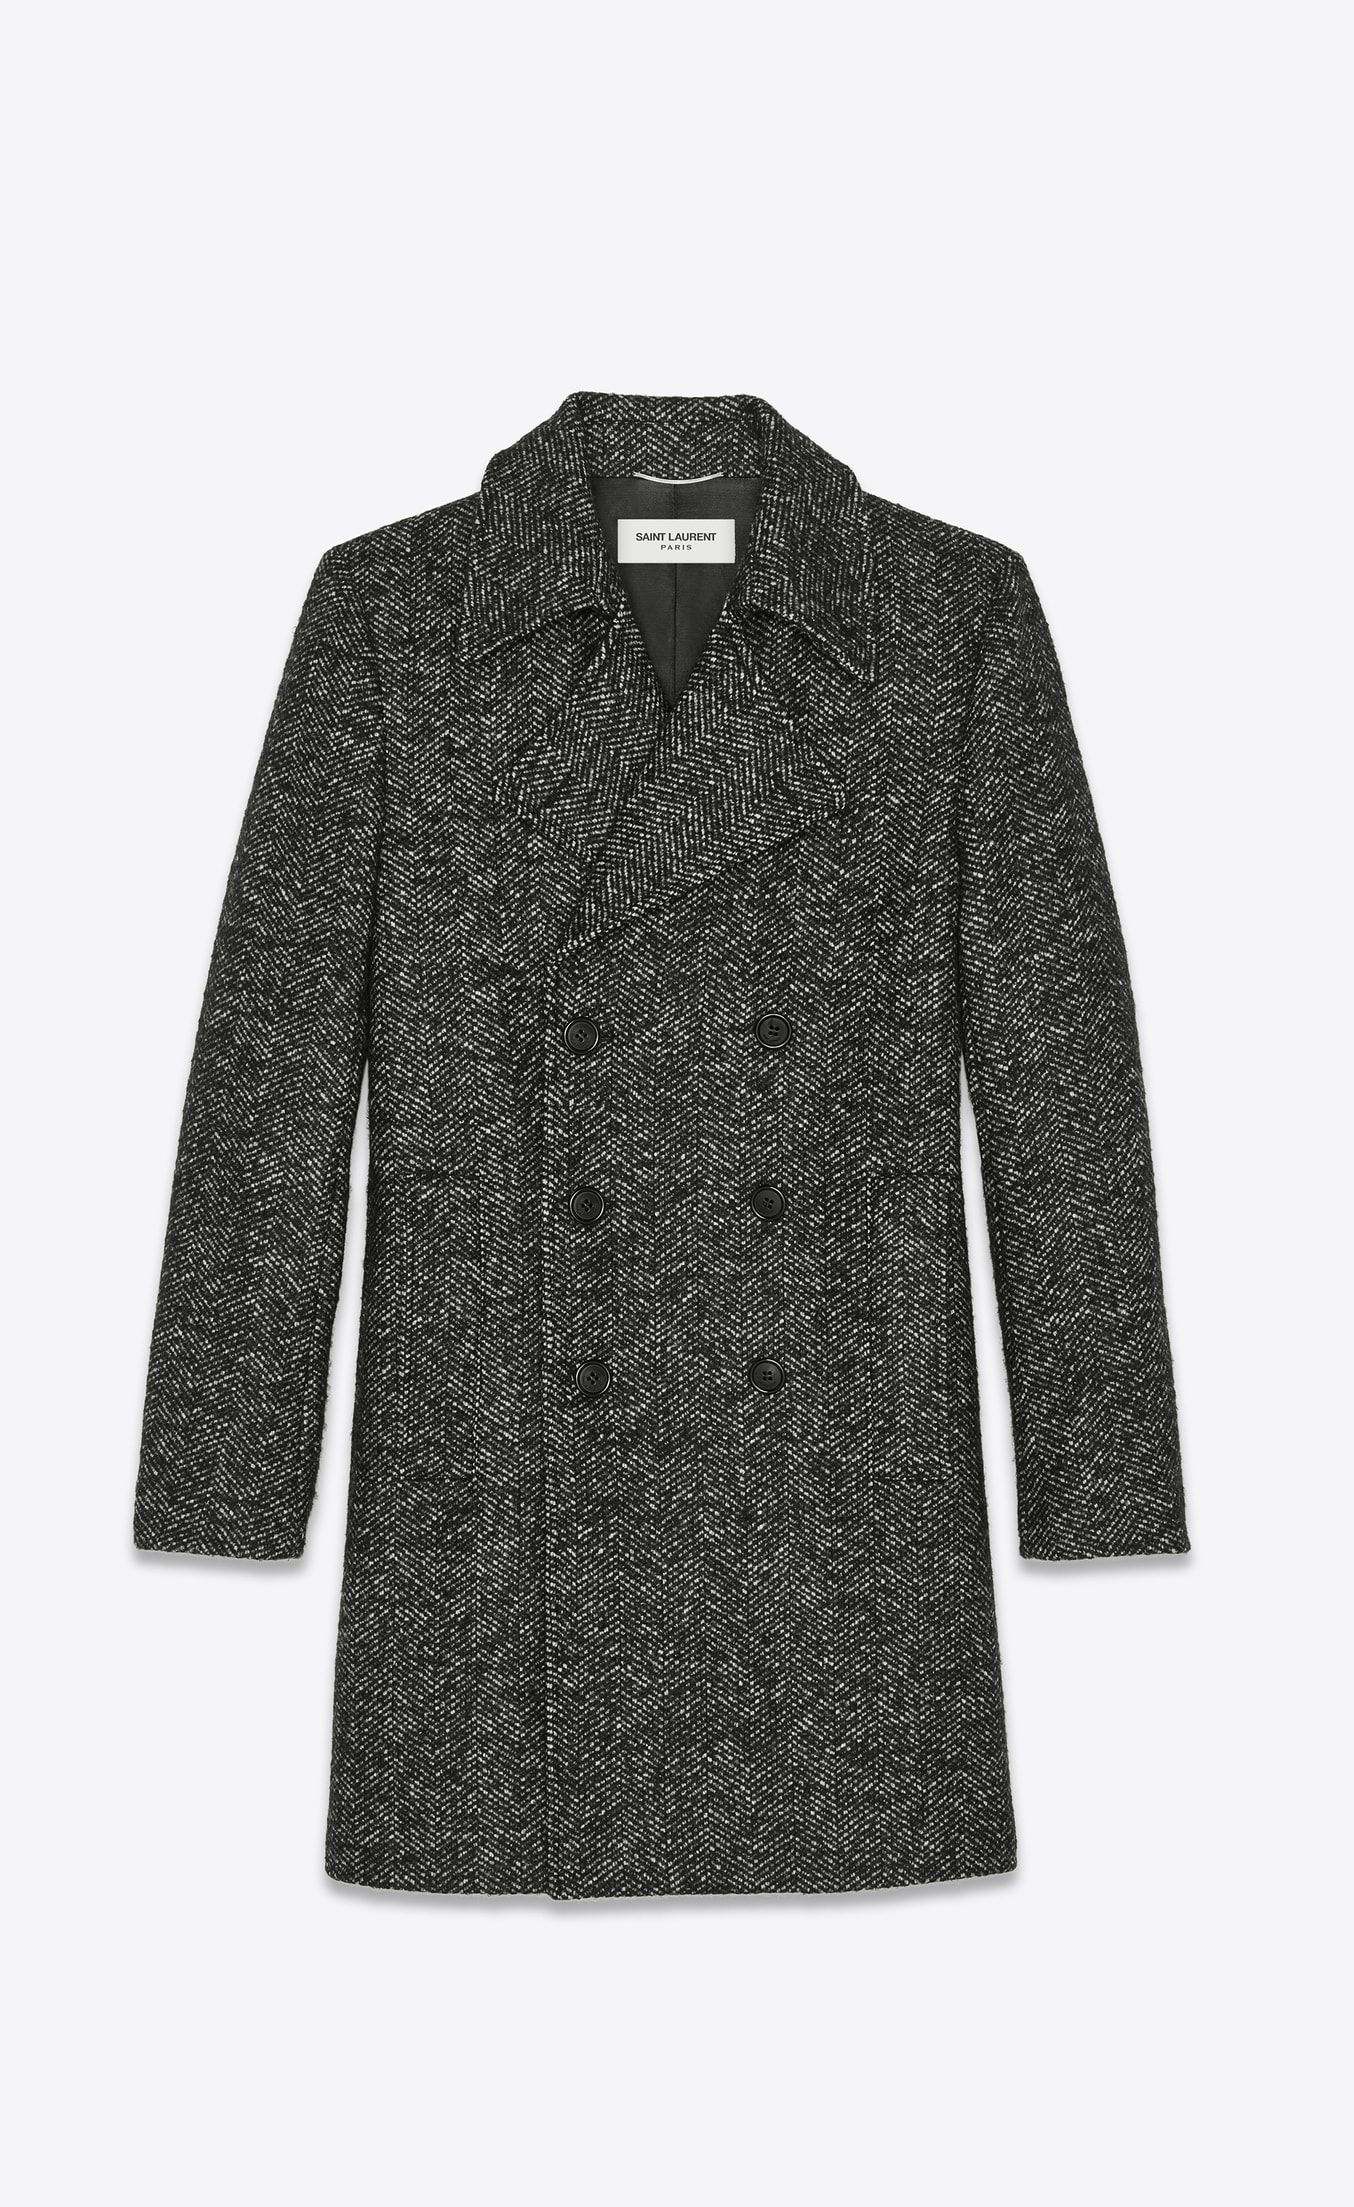 157ca24308 Pin by Liam Spurr on It's called fashion look it up in 2019 | Wool ...